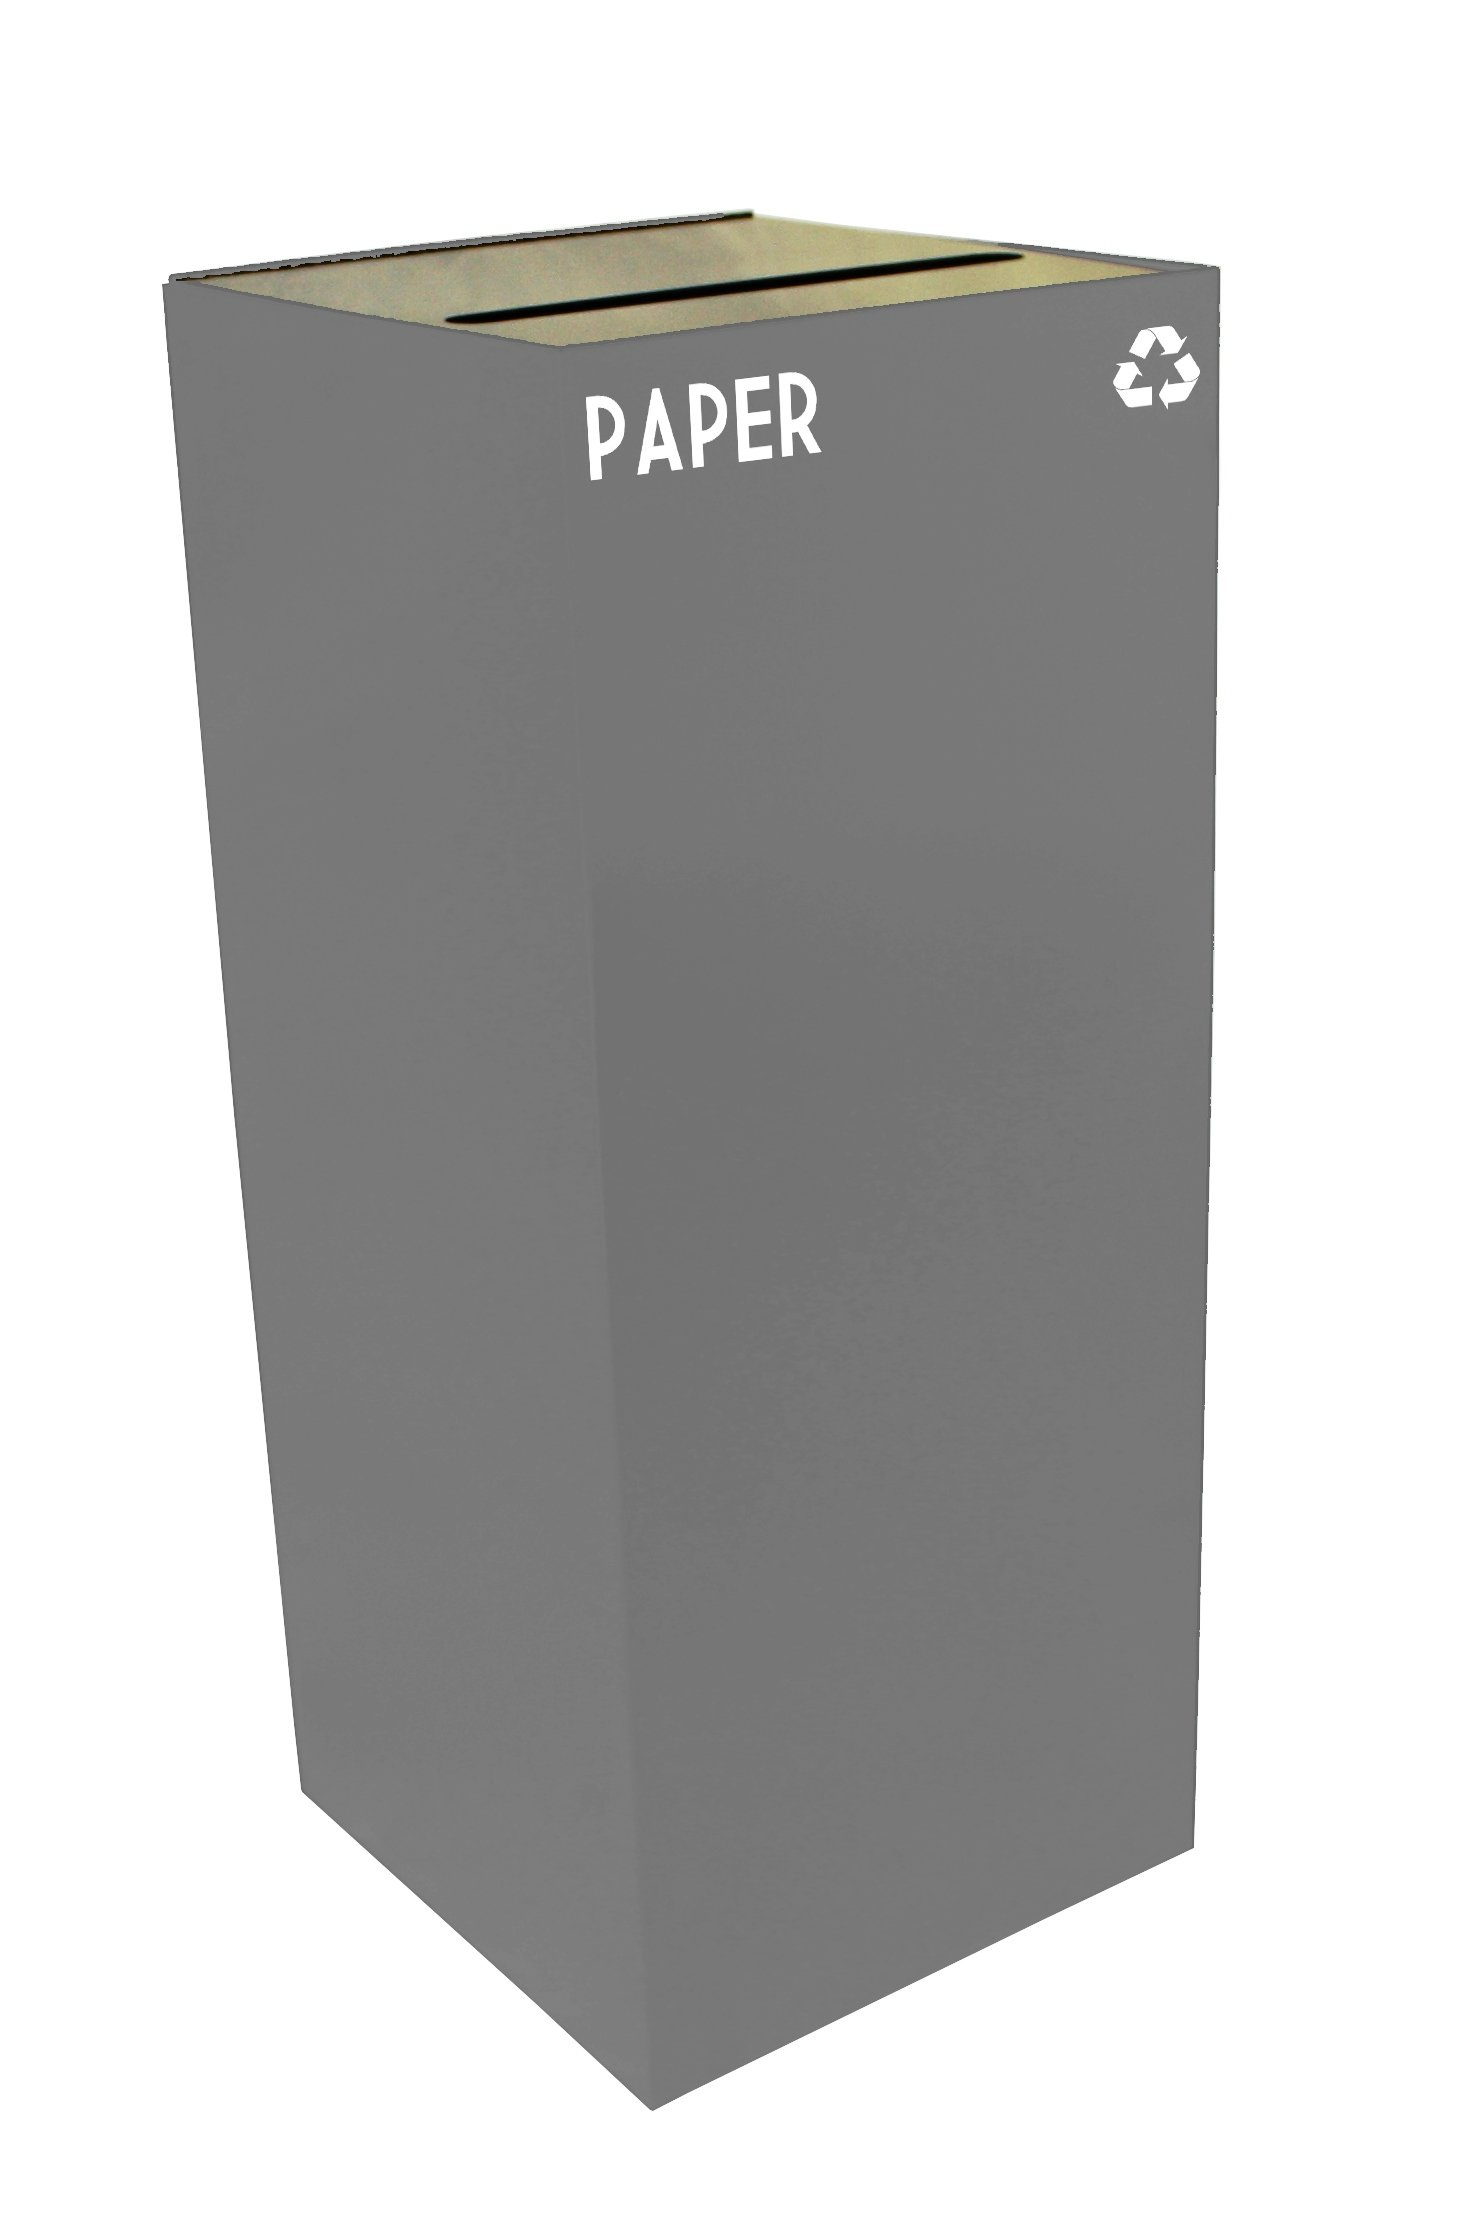 Witt Industries 36GC02-SL GeoCube Recycling Receptacle with Slot Opening, Steel, 36 gal, Slate